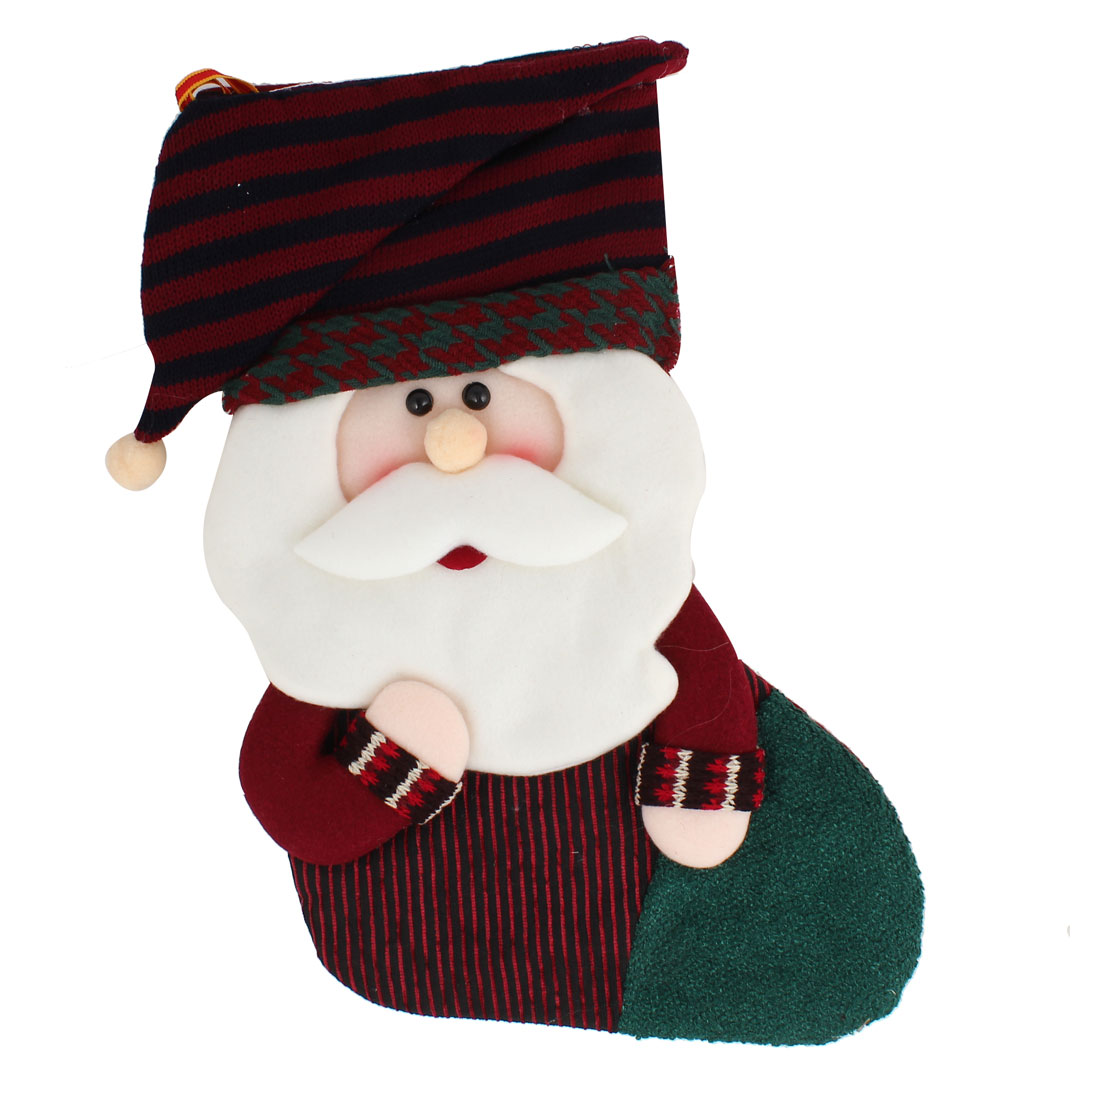 27cm x 43cm Xmas Santa Claus Detail Felt Christmas Stocking Gift Holder Burgundy White Green